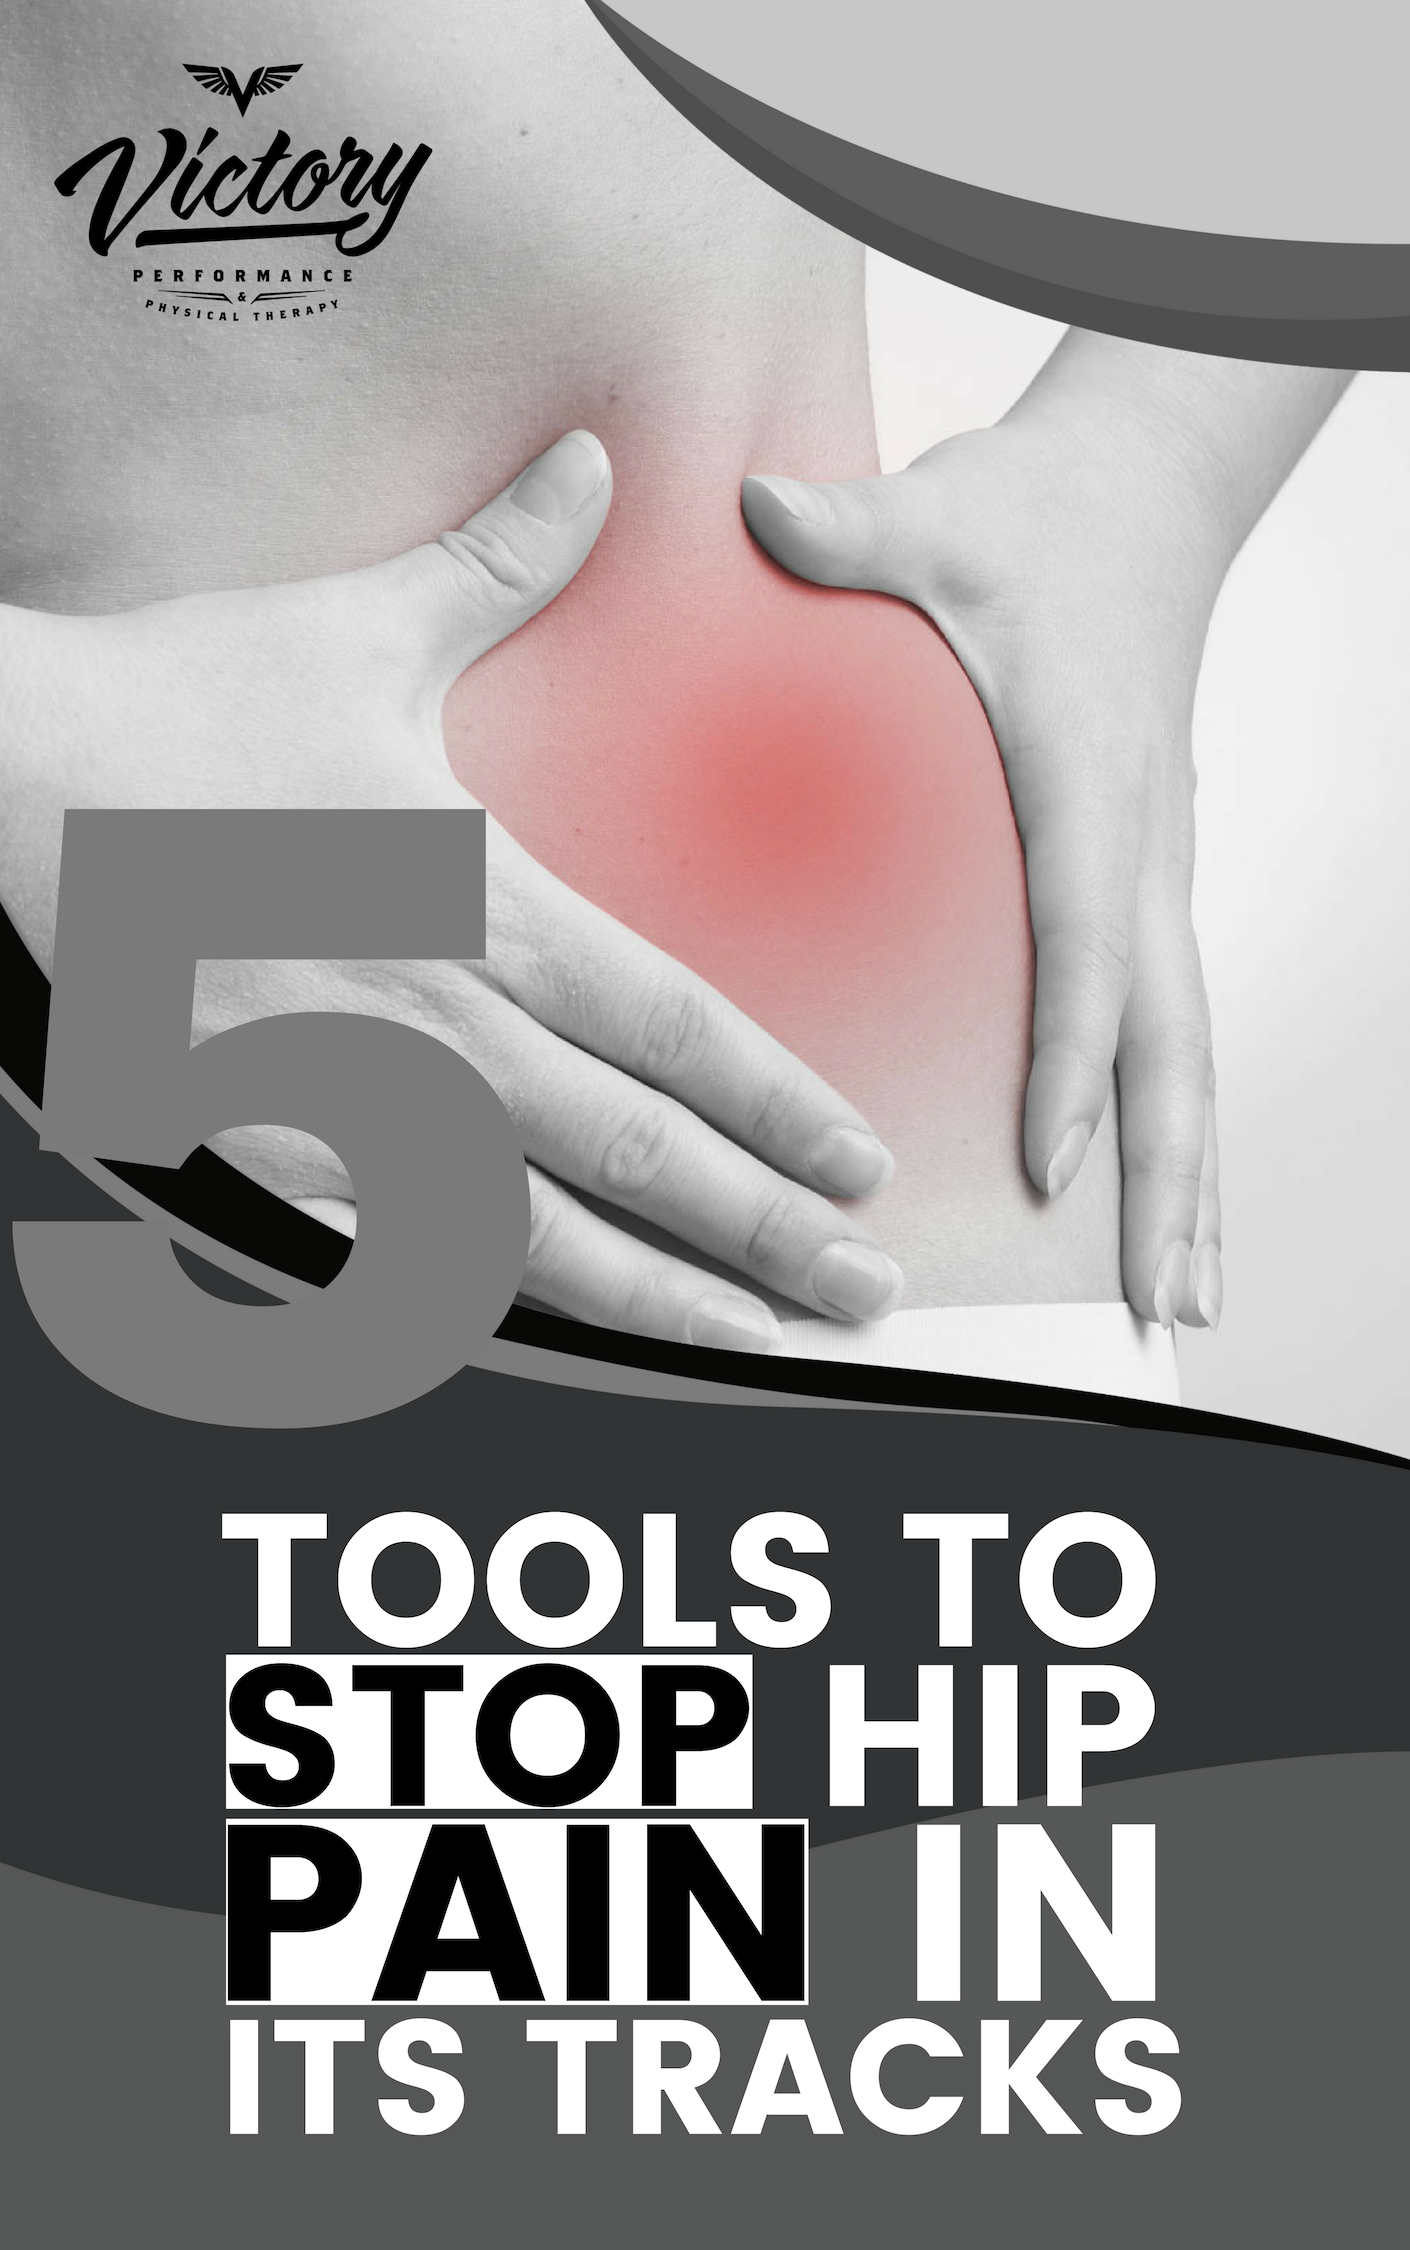 2D_update_-_5_Tools_to_Stop_Hip_Pain_in_its_Tracks.png